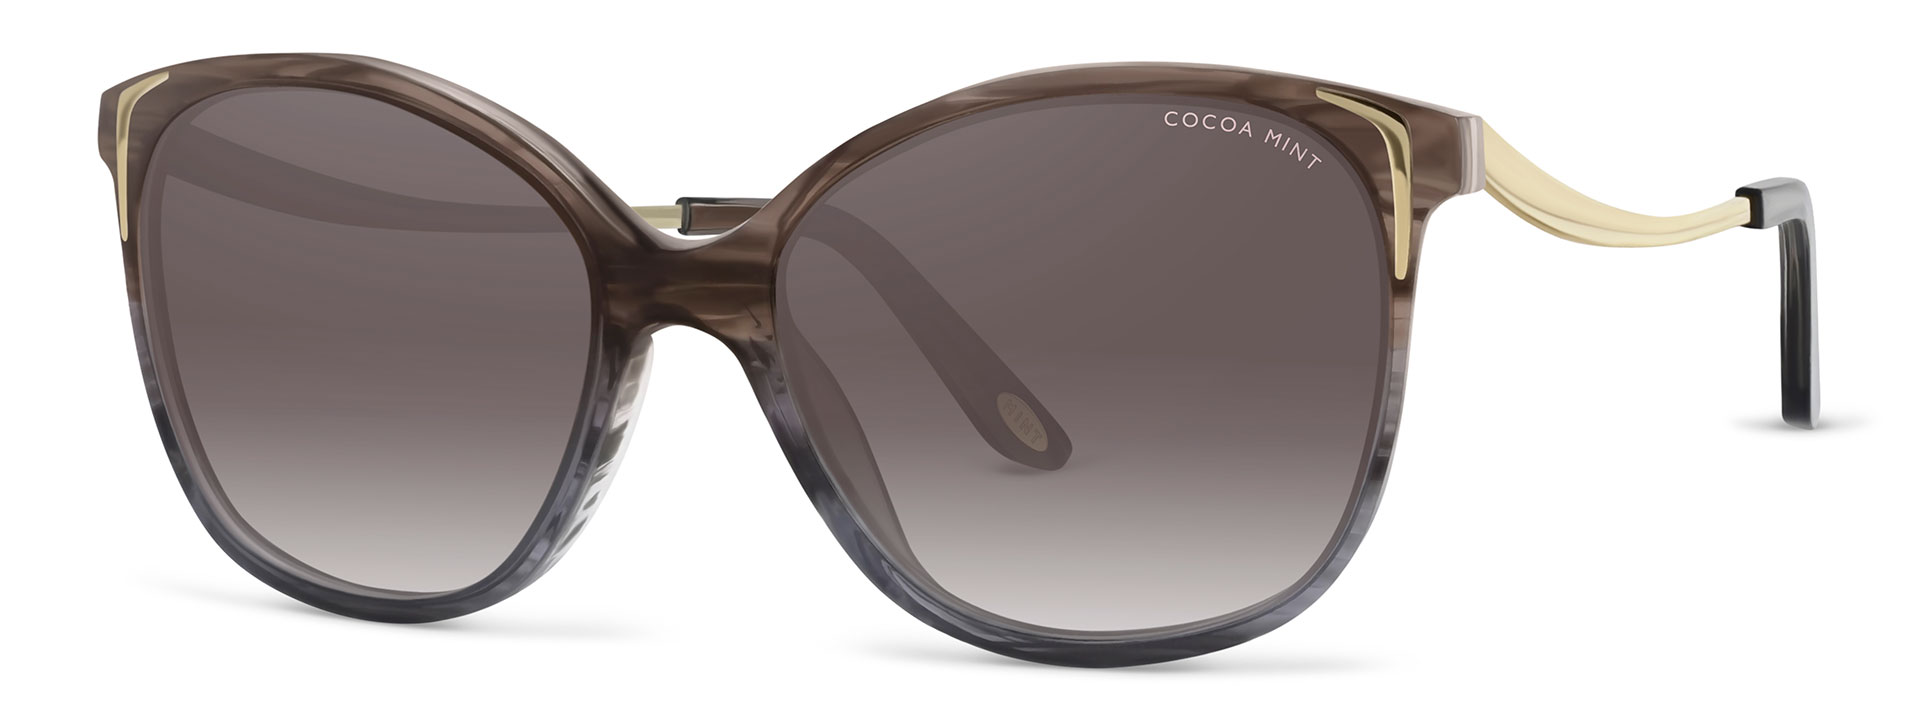 Cocoa Mint Sun Glasses - Brown Ombre - CMS2068-C1